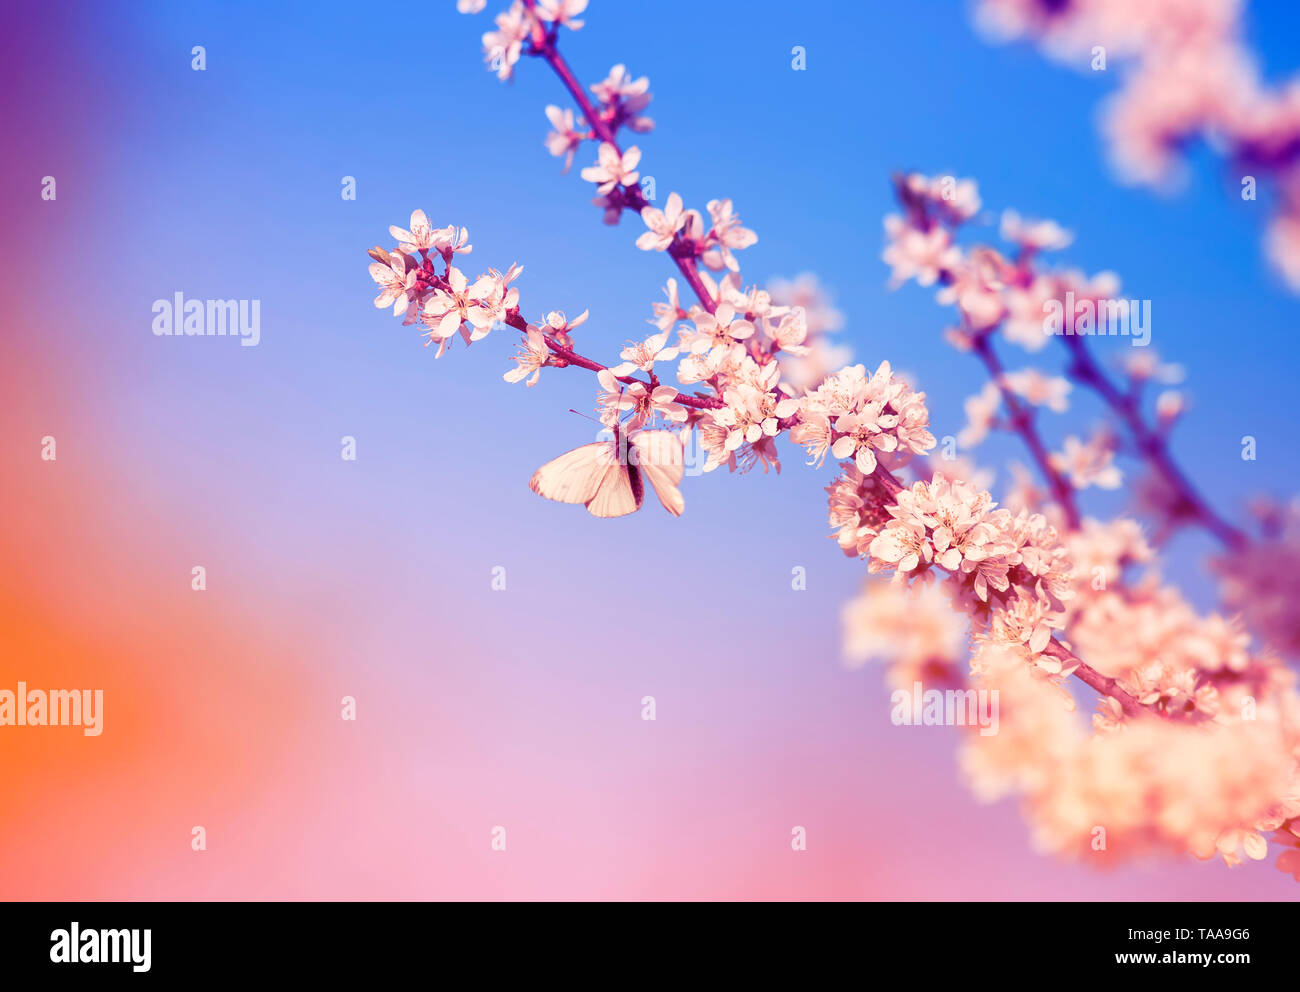 beautiful little butterfly flutters over the branches with white shrub buds blooming in May warm sunny garden on the background of bright blue sky - Stock Image